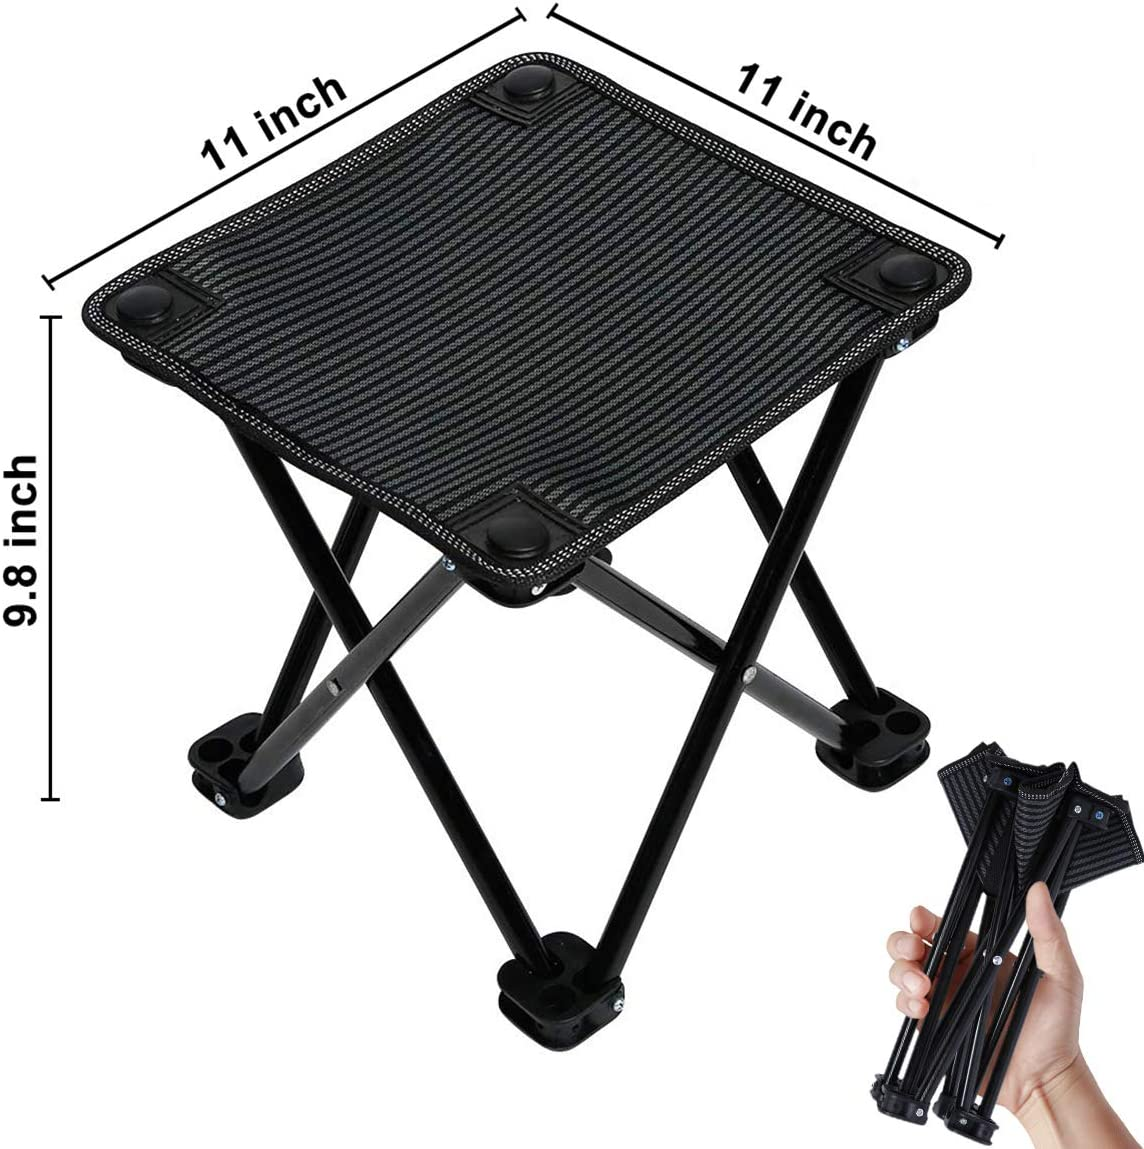 Aiung Slacker Chair Folding Camping Stool Outdoor Travelchair Portable Stools Lightweight with Carry Bag, Support 220 lbs